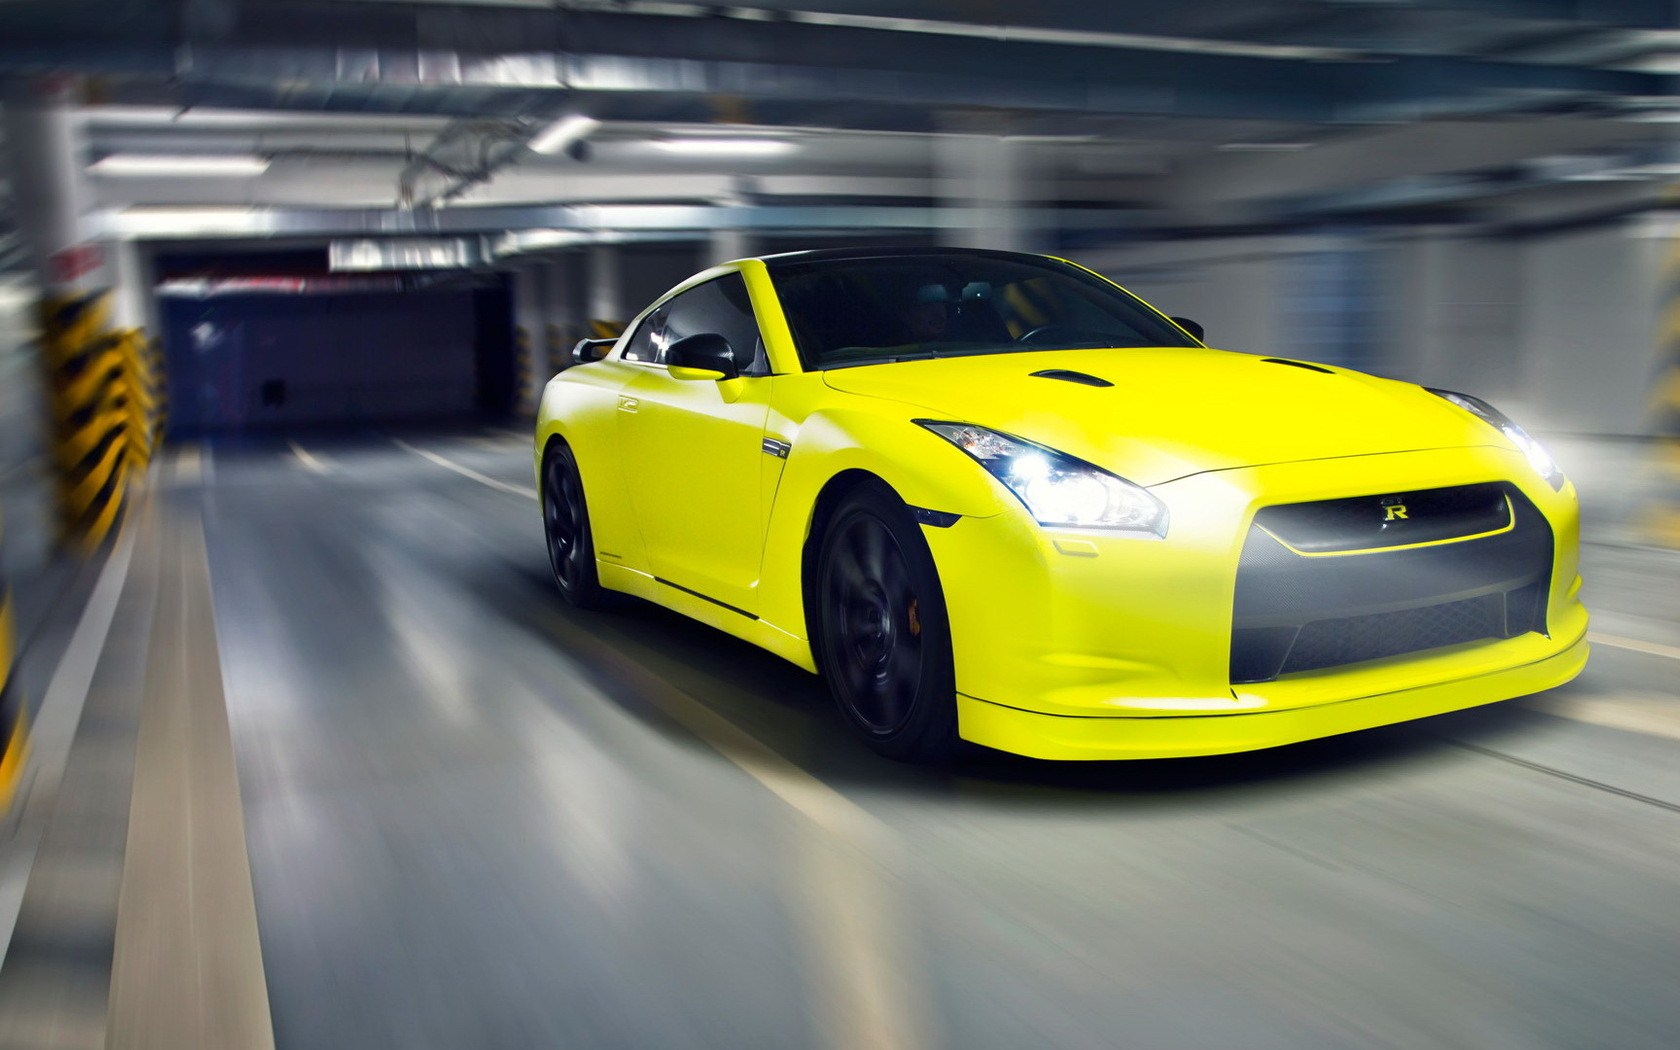 Car Wallpapers 2014 Download 30 Awesome Nissan Gtr Wallpapers